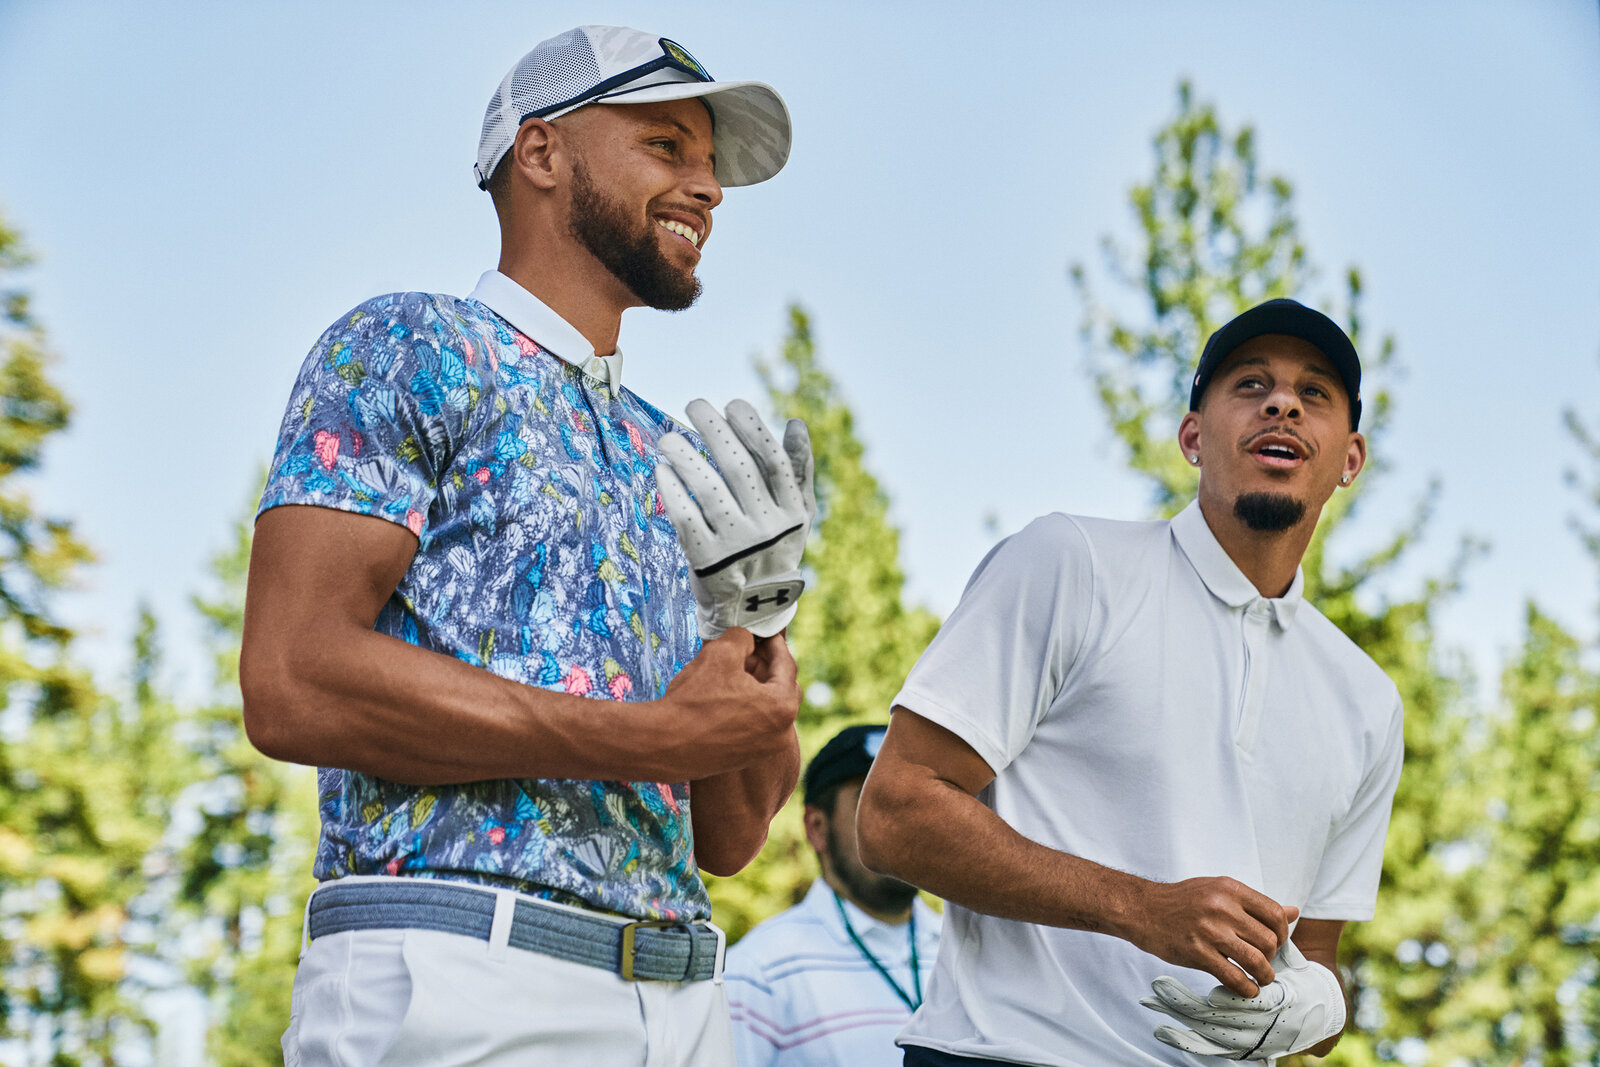 Stephen (left) hit the course with his brother Seth Curry (right) in the new Curry Brand golf collection.